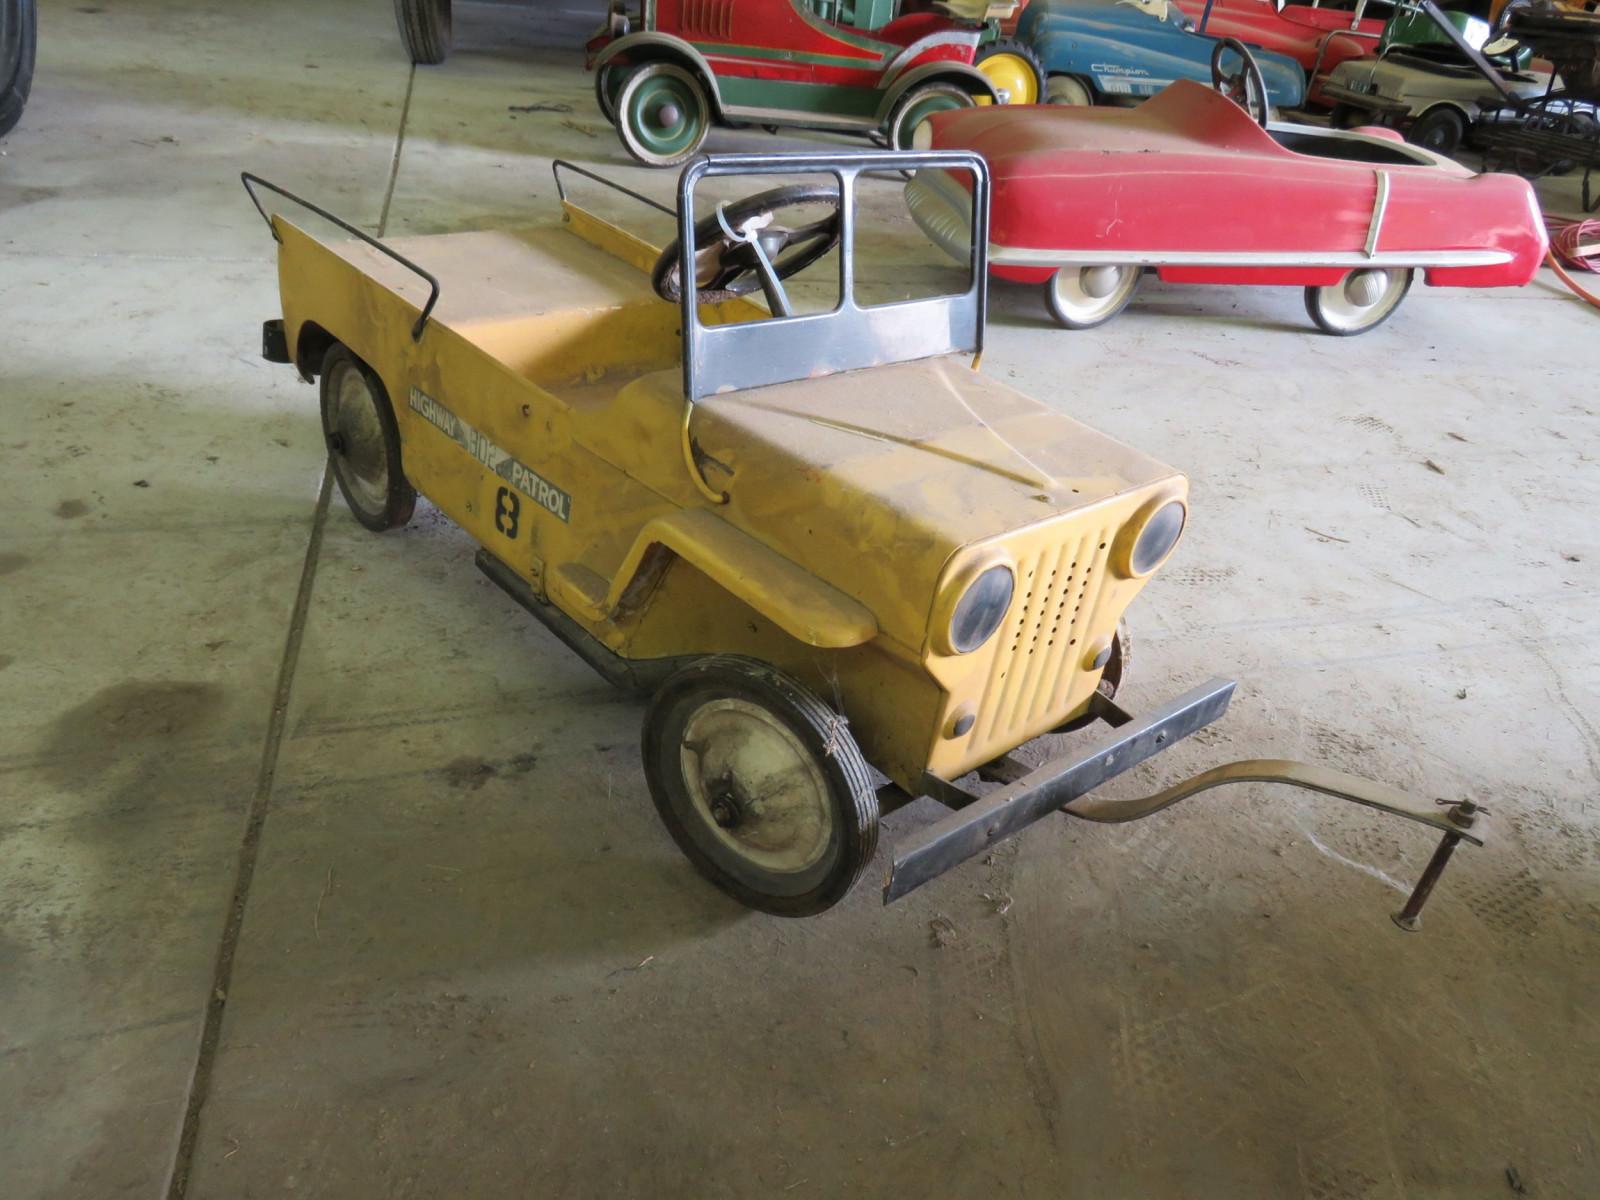 Vintage Murray #802 Highway Patrol Jeep Pedal Car - Image 3